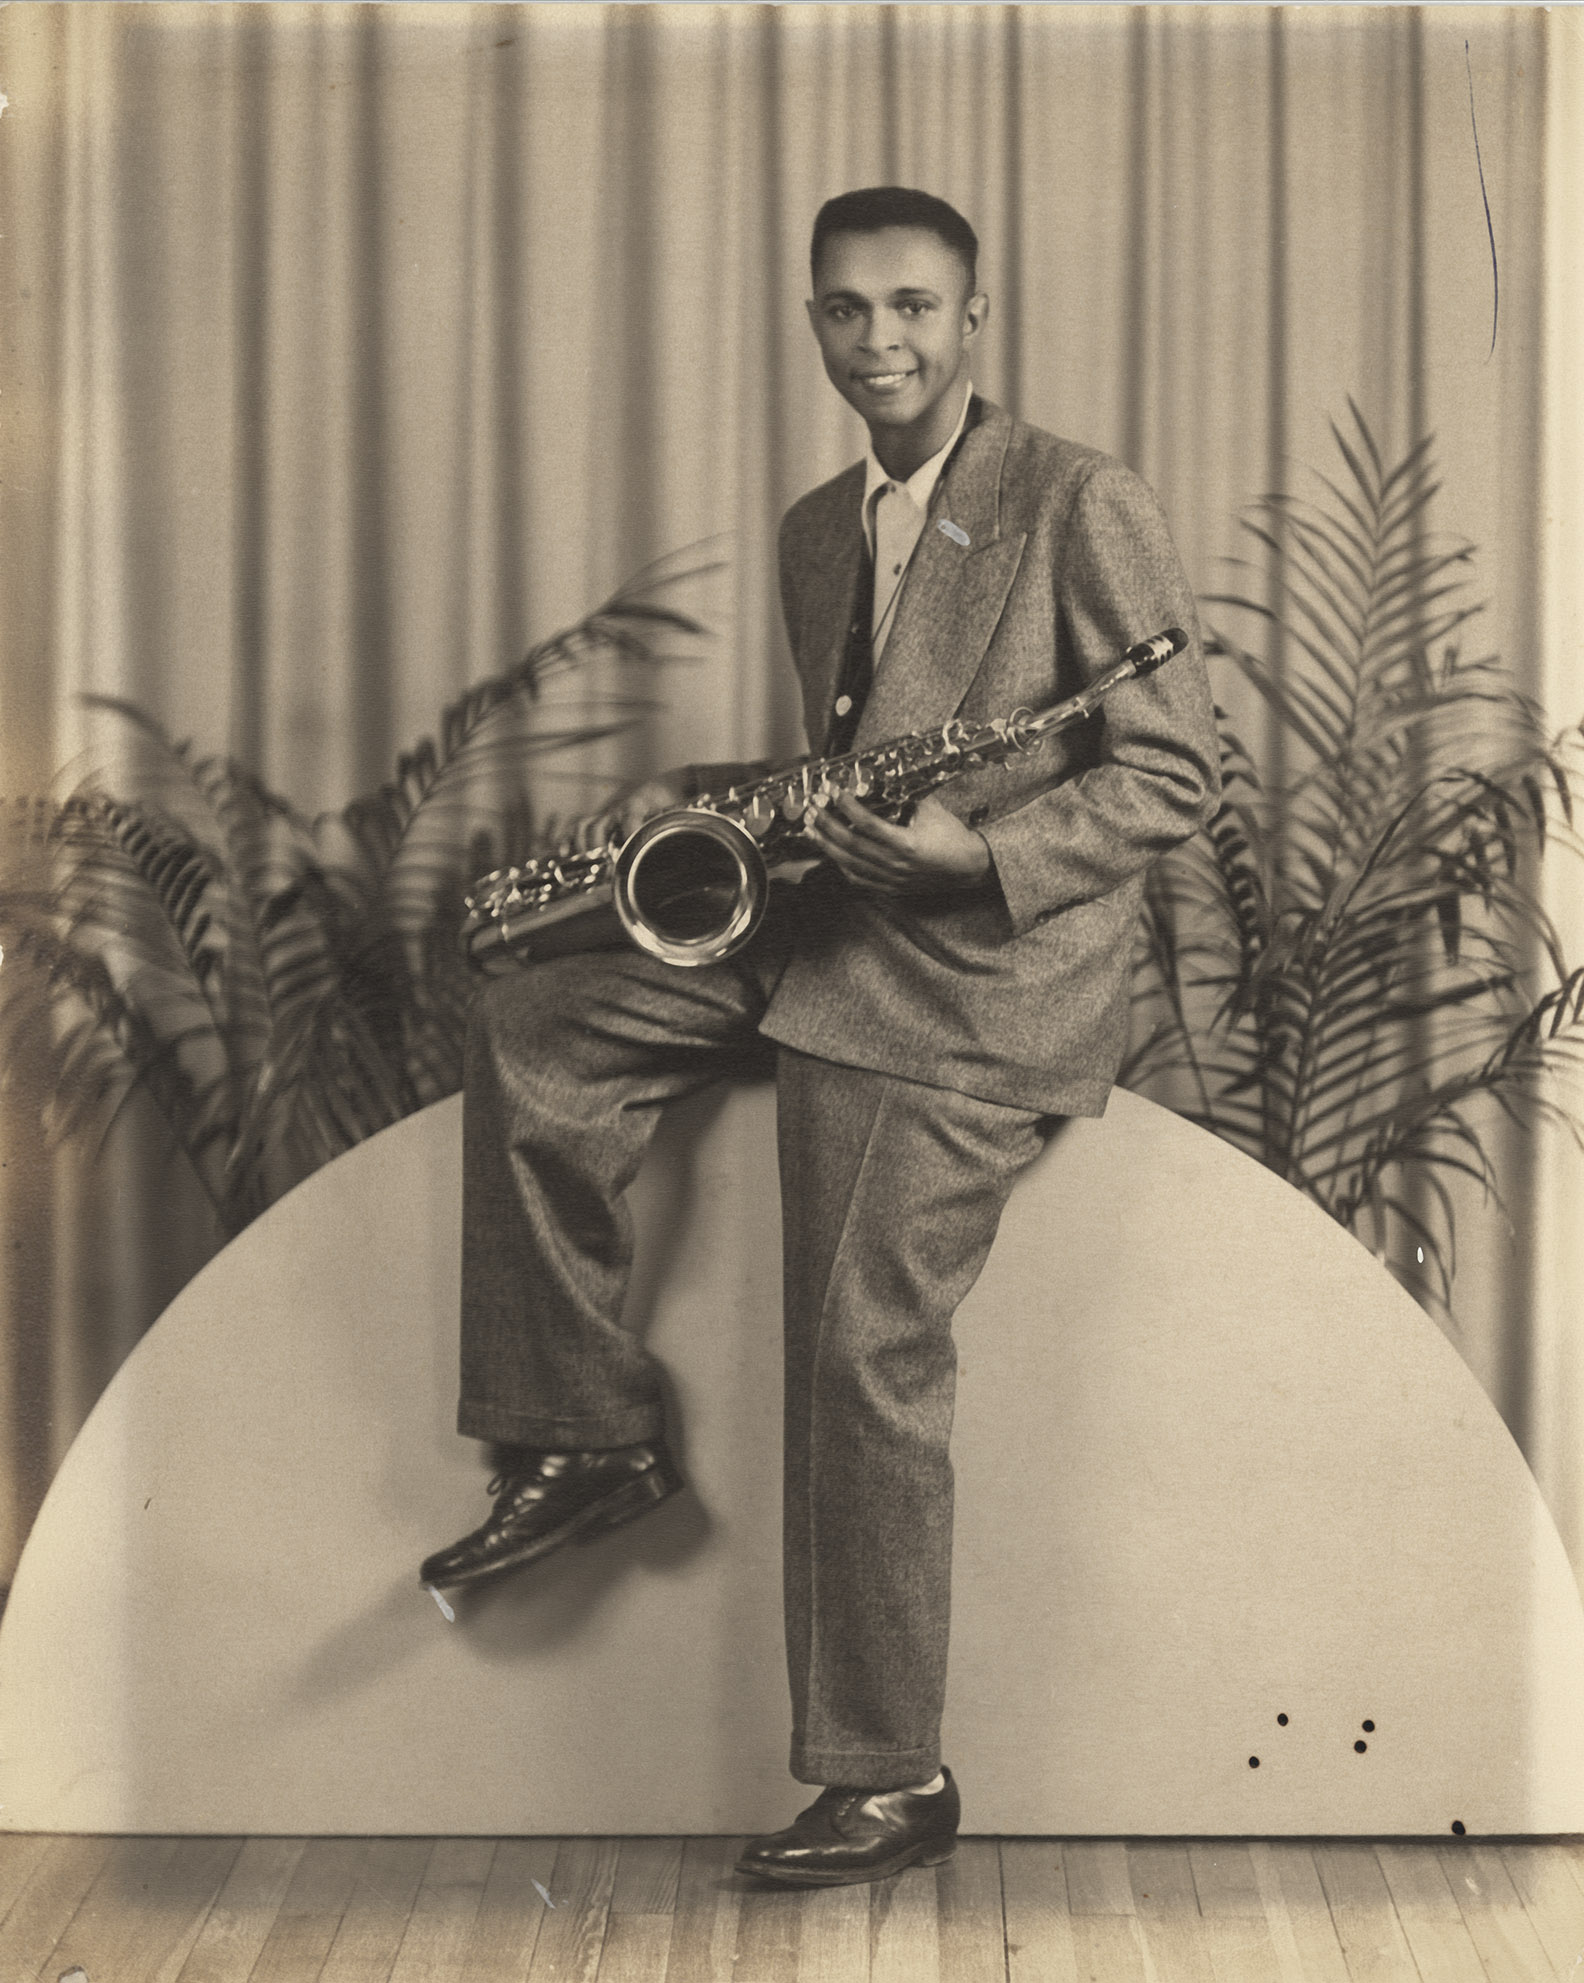 Depiction of Tiyo Attallah Salah-El playing saxophone in high school